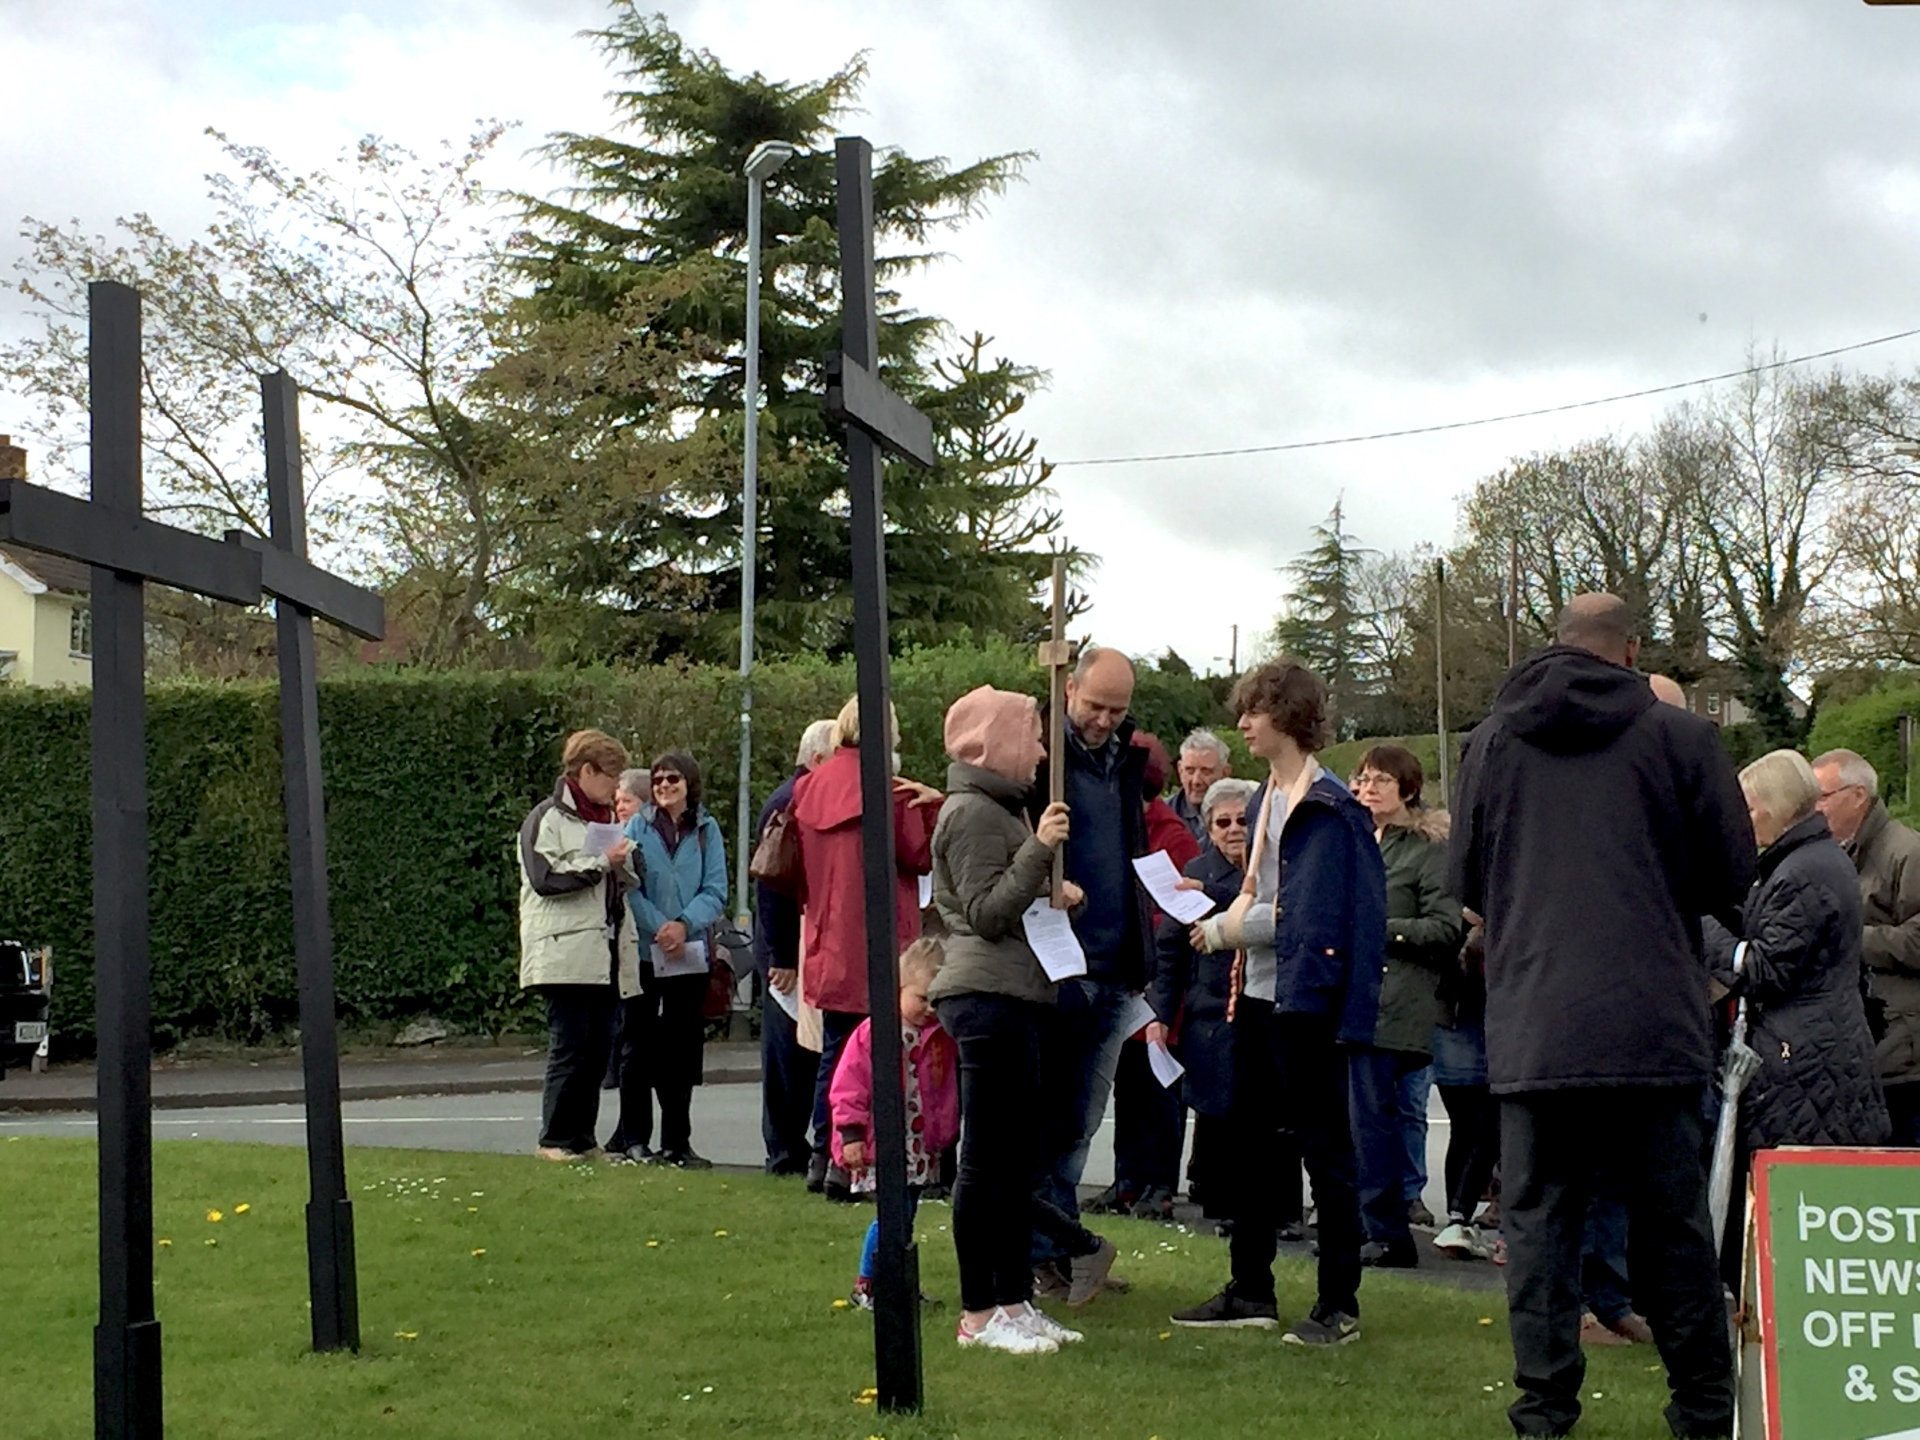 Gathering at the crosses